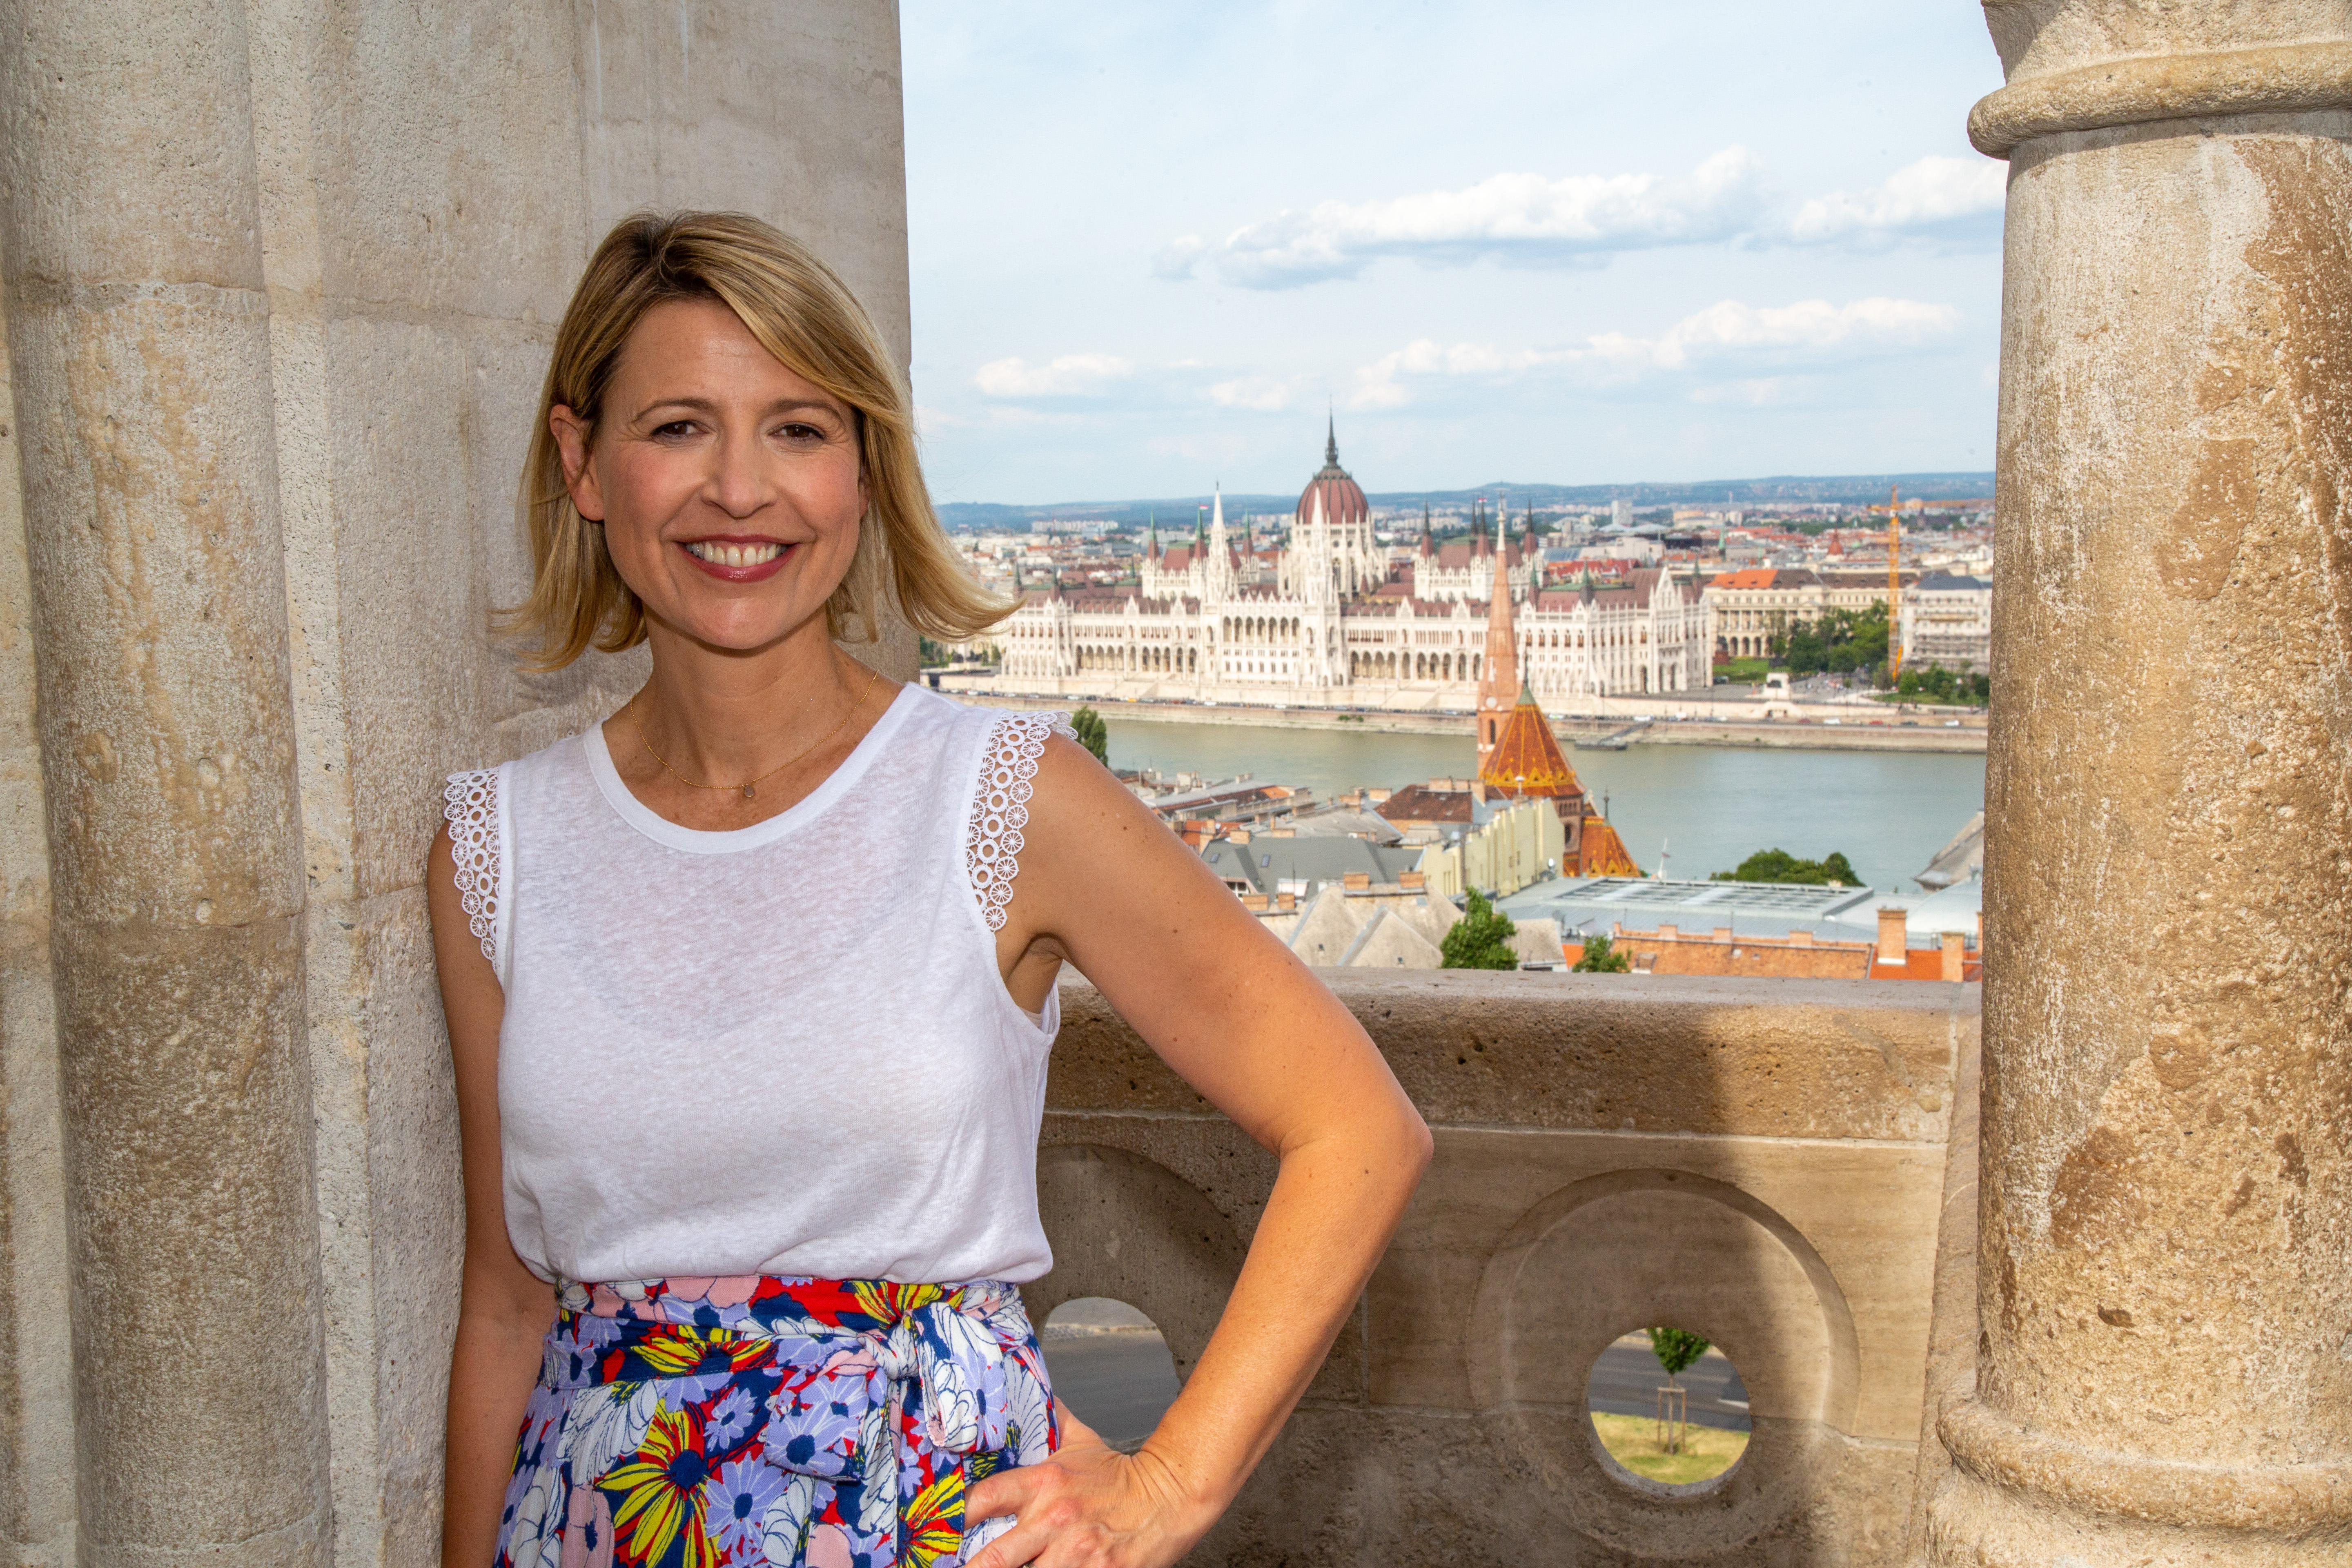 Emmy Award-winning host Samantha Brown explores food, drinks, art, design, culture and adventure.